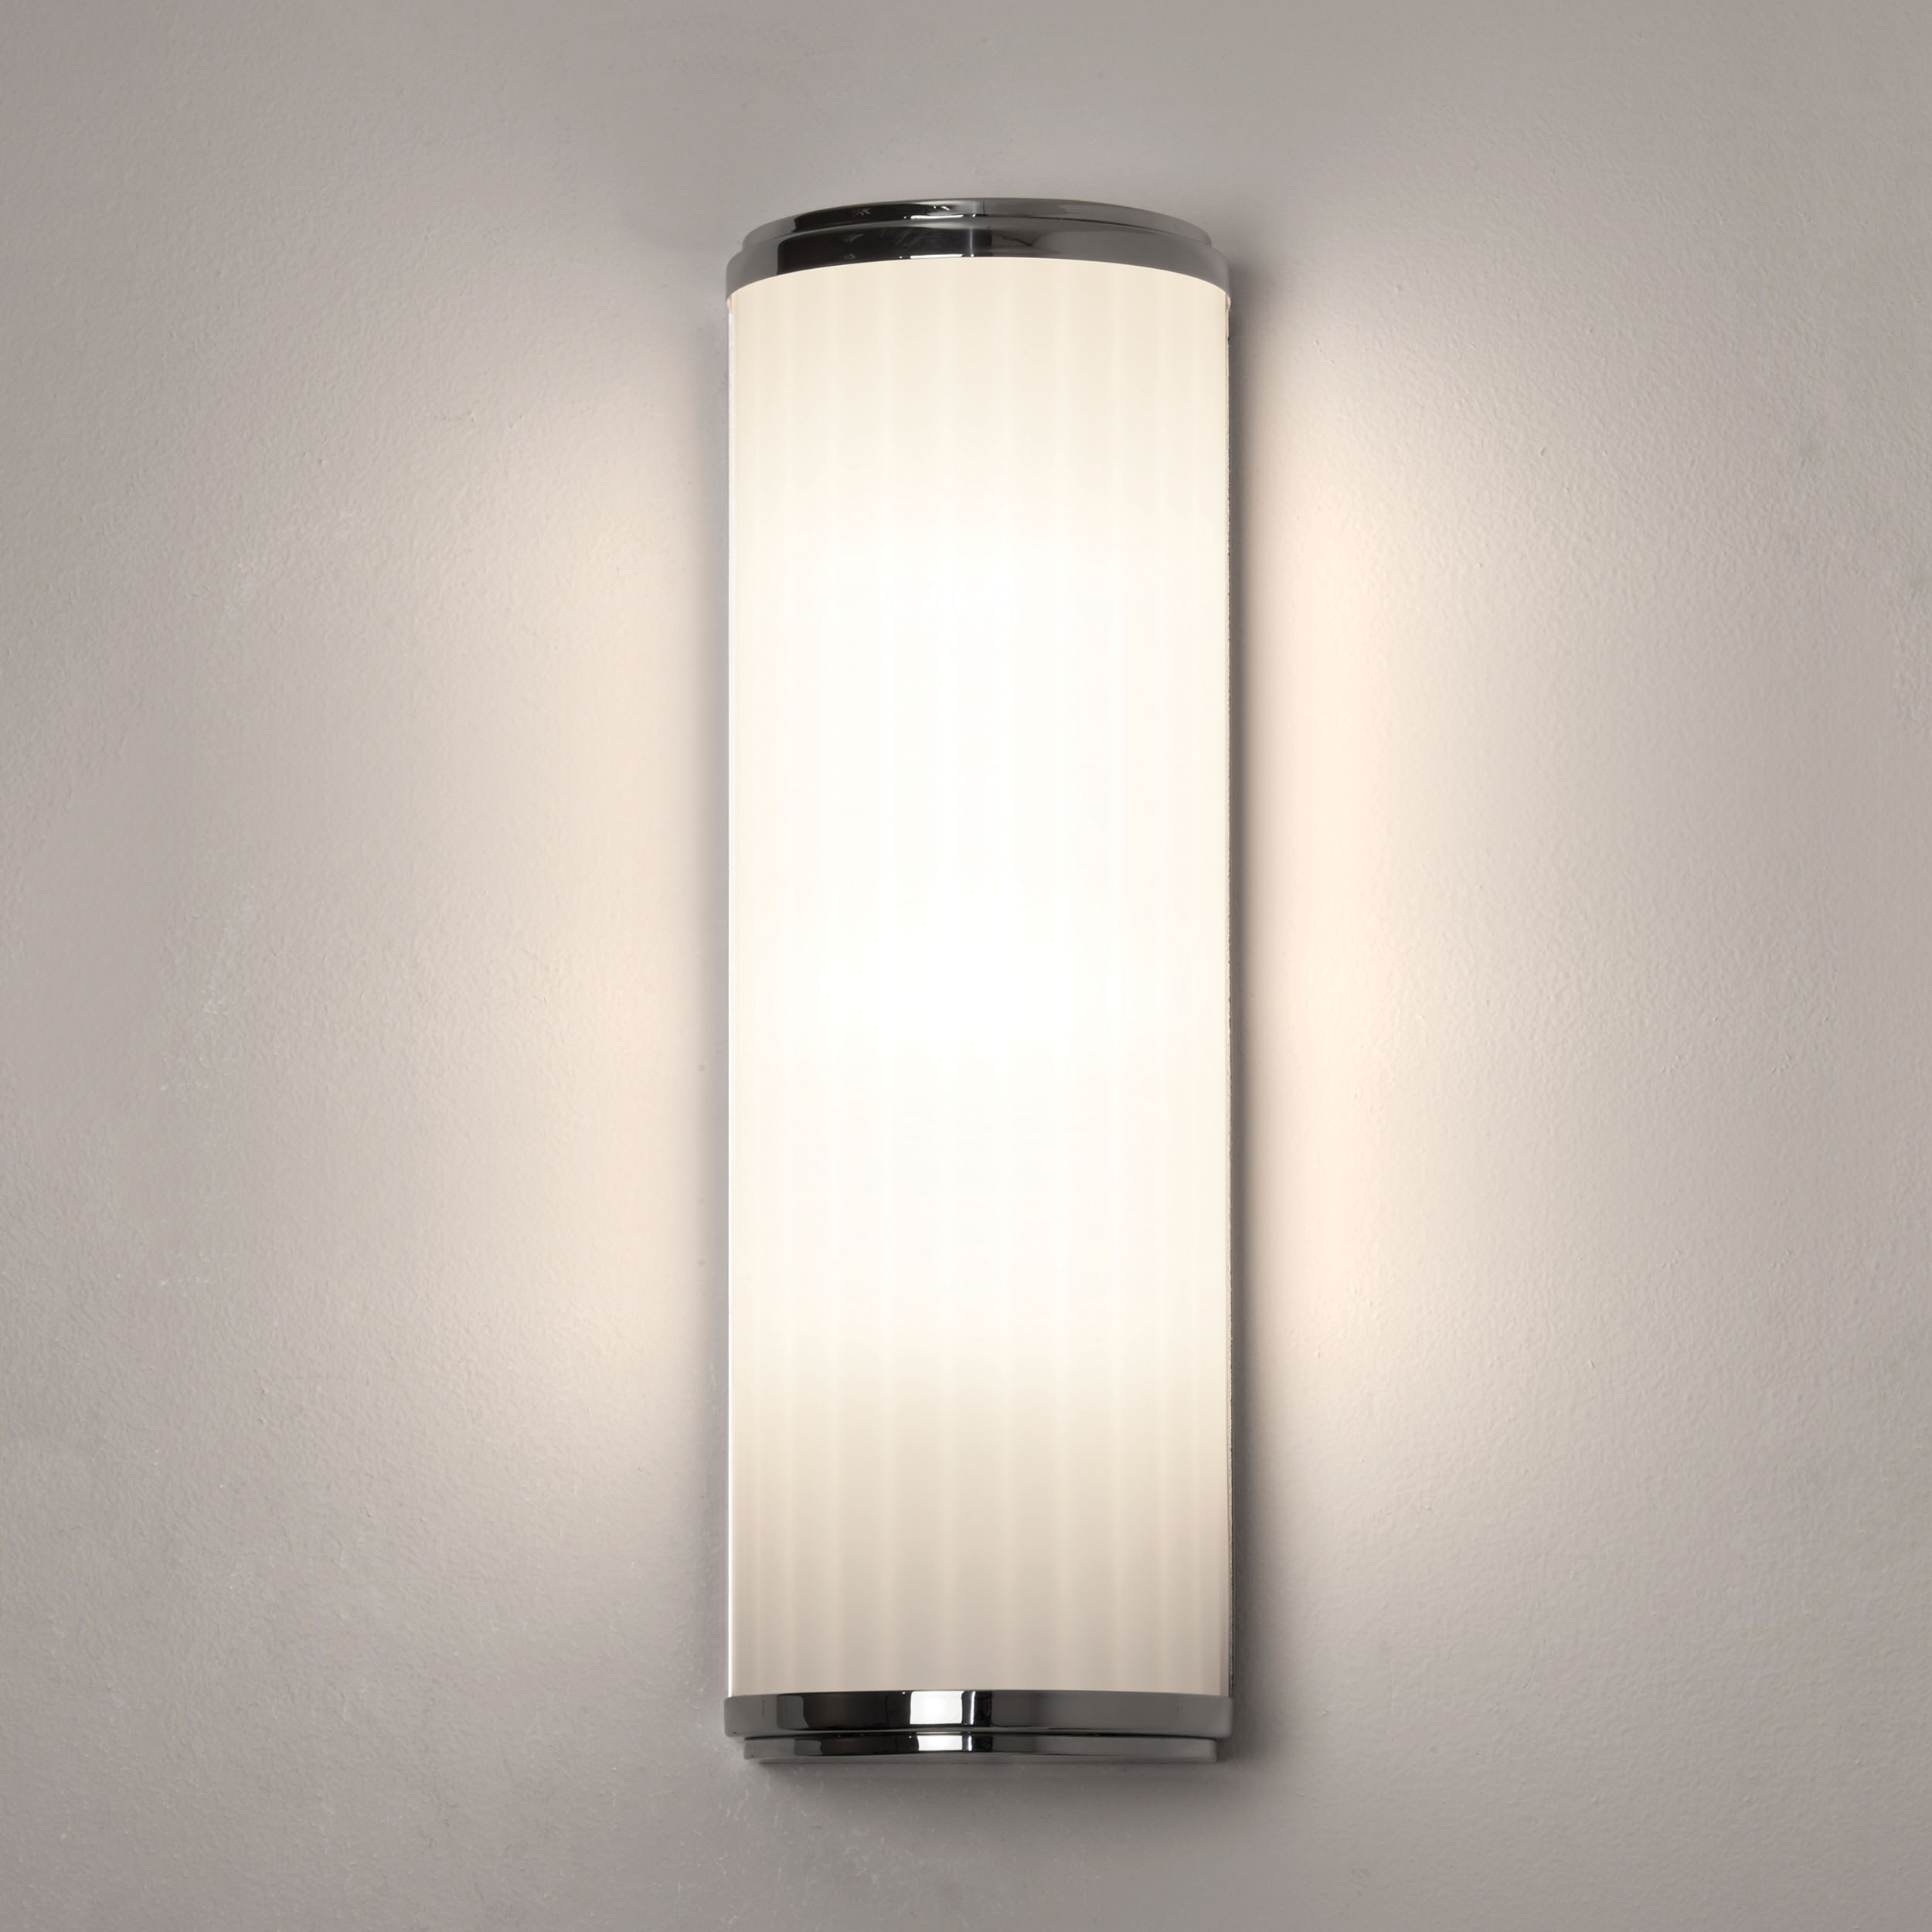 Astro Monza 400 6 4w Led Ip44 Bathroom Wall Mirror Light Polished Chrome Glass Liminaires